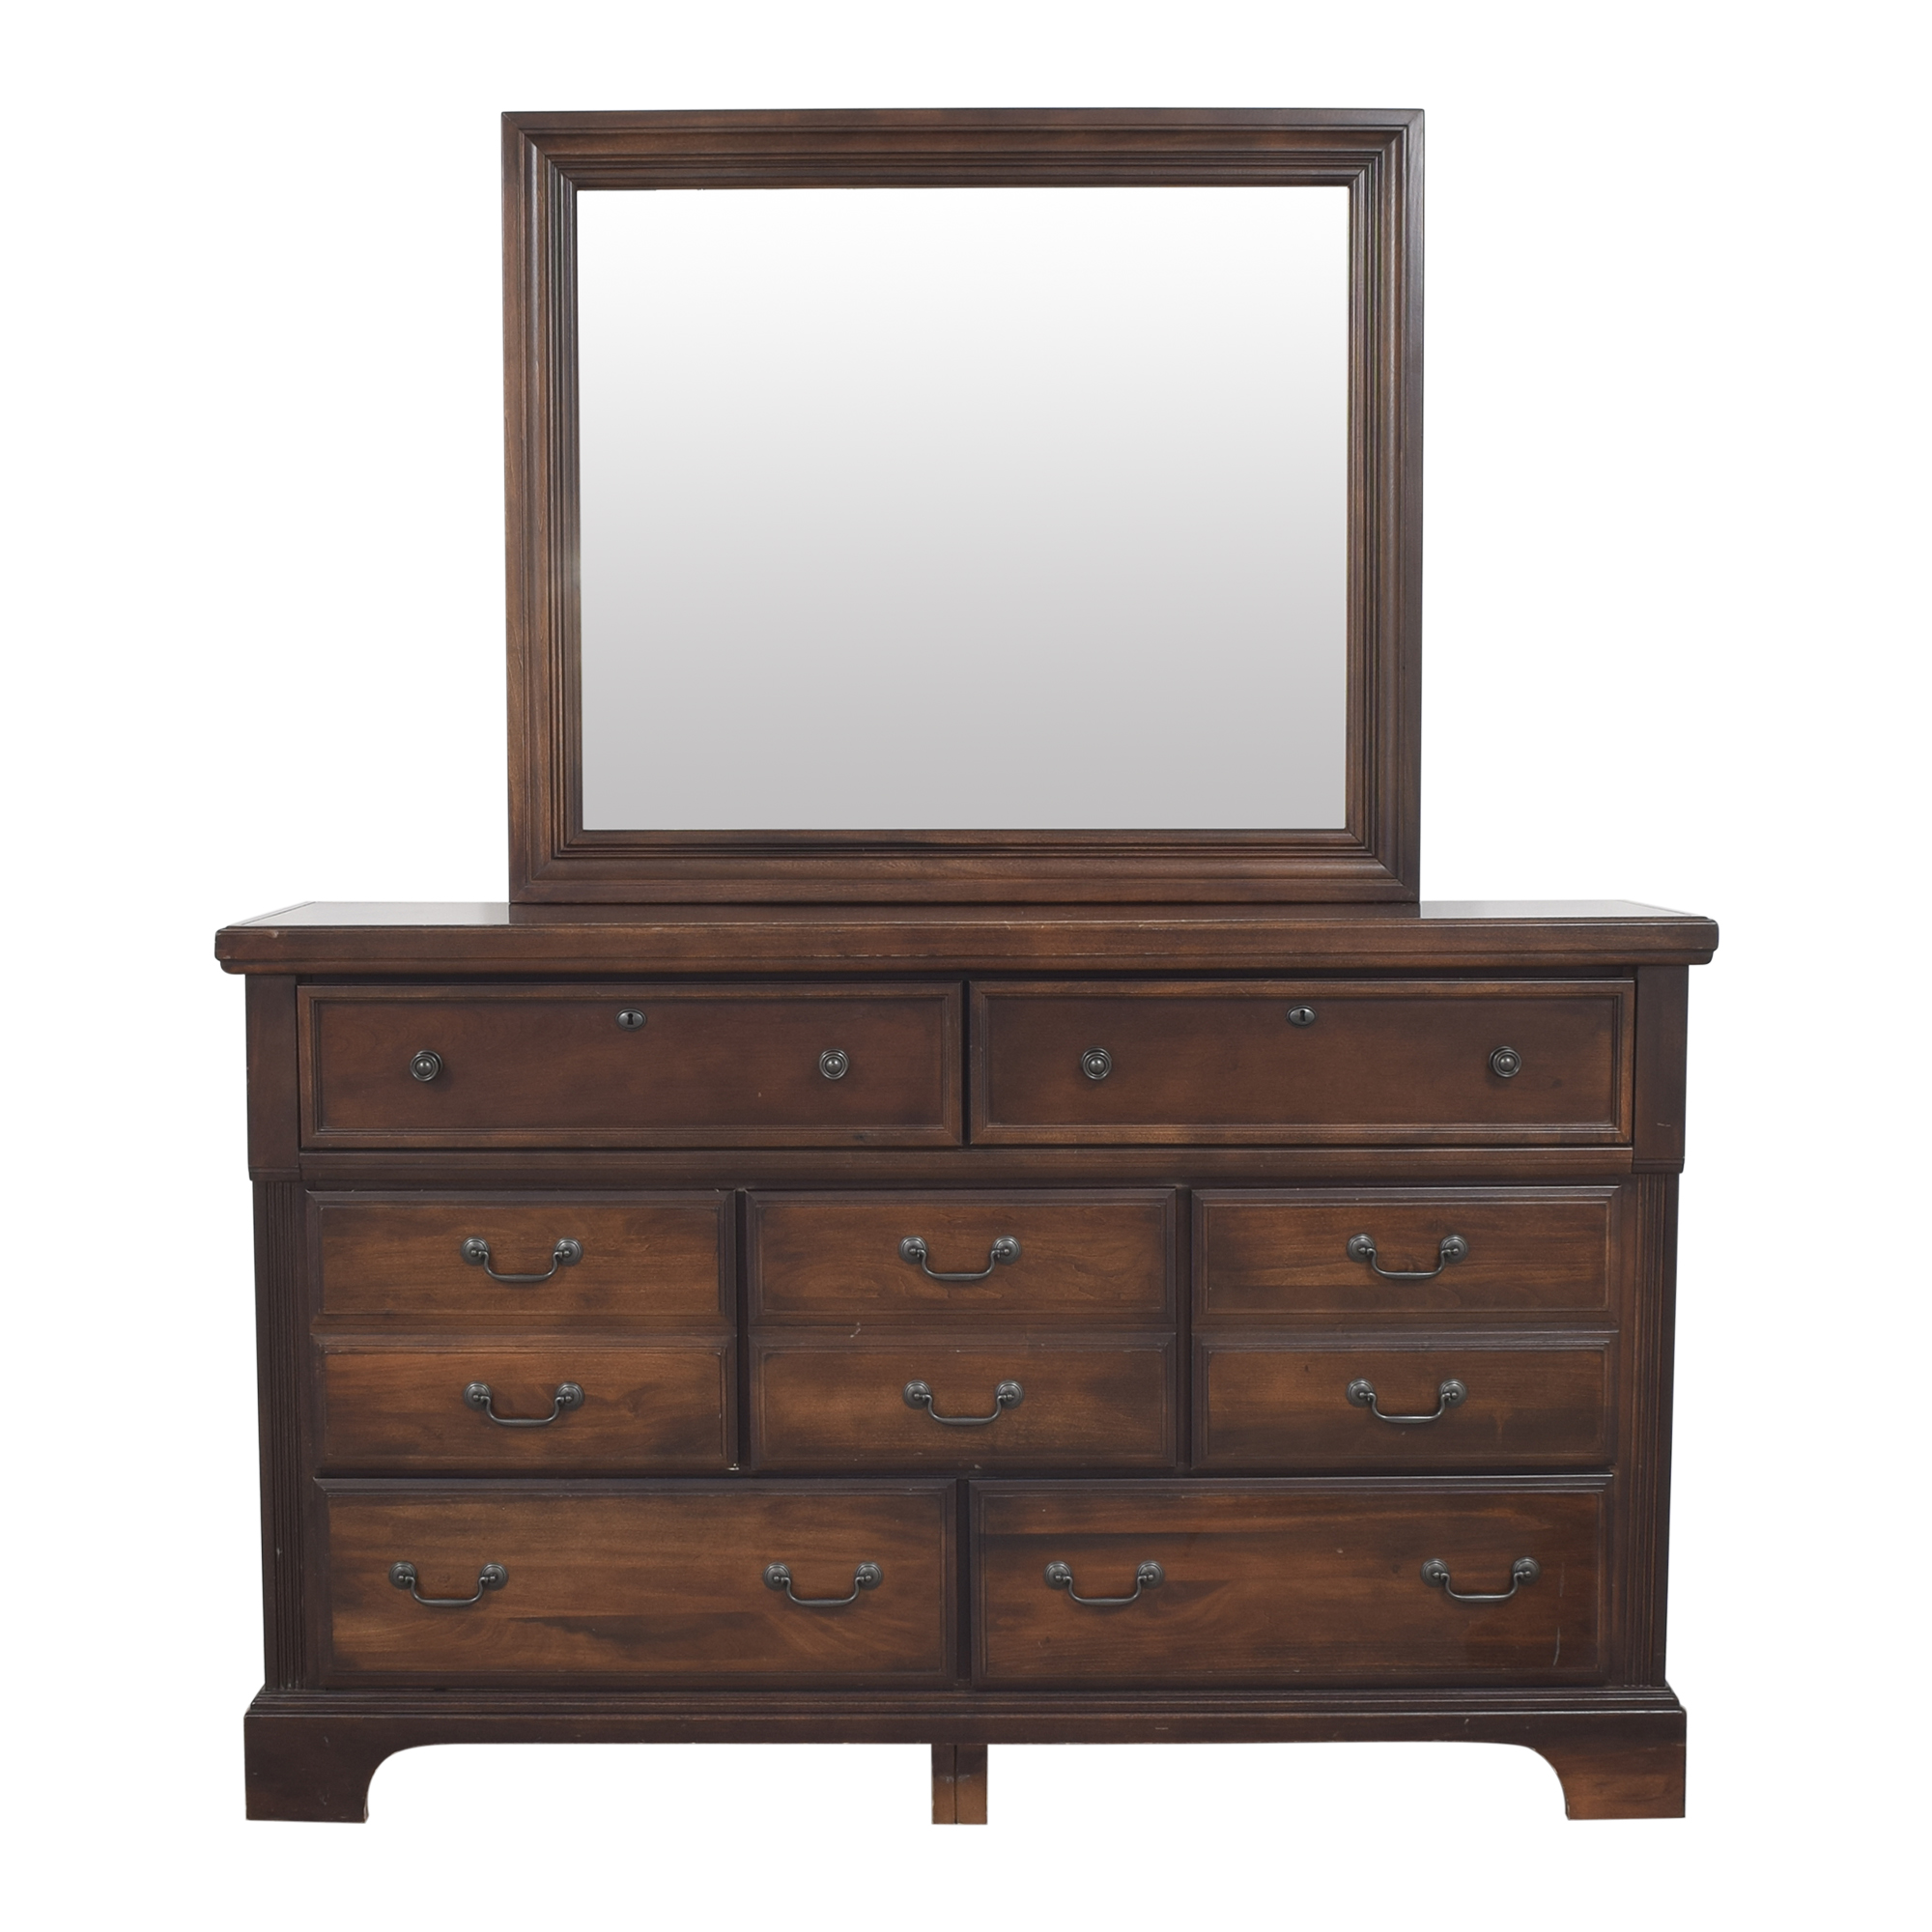 buy Vaughan-Bassett Triple Dresser with Mirror Vaughan-Bassett Storage